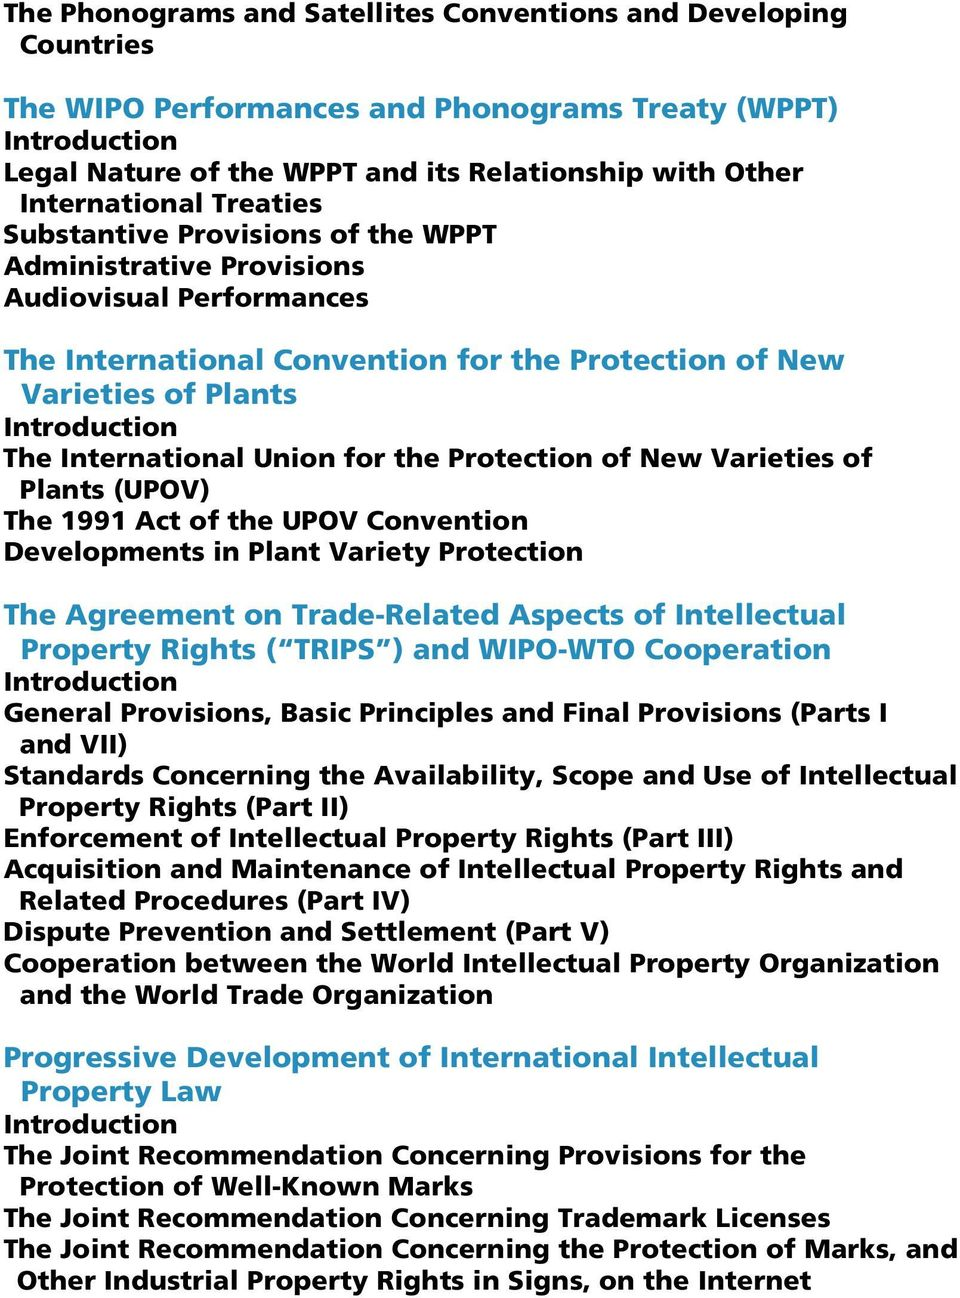 The International Union for the Protection of New Varieties of Plants (UPOV) The 1991 Act of the UPOV Convention Developments in Plant Variety Protection The Agreement on Trade-Related Aspects of